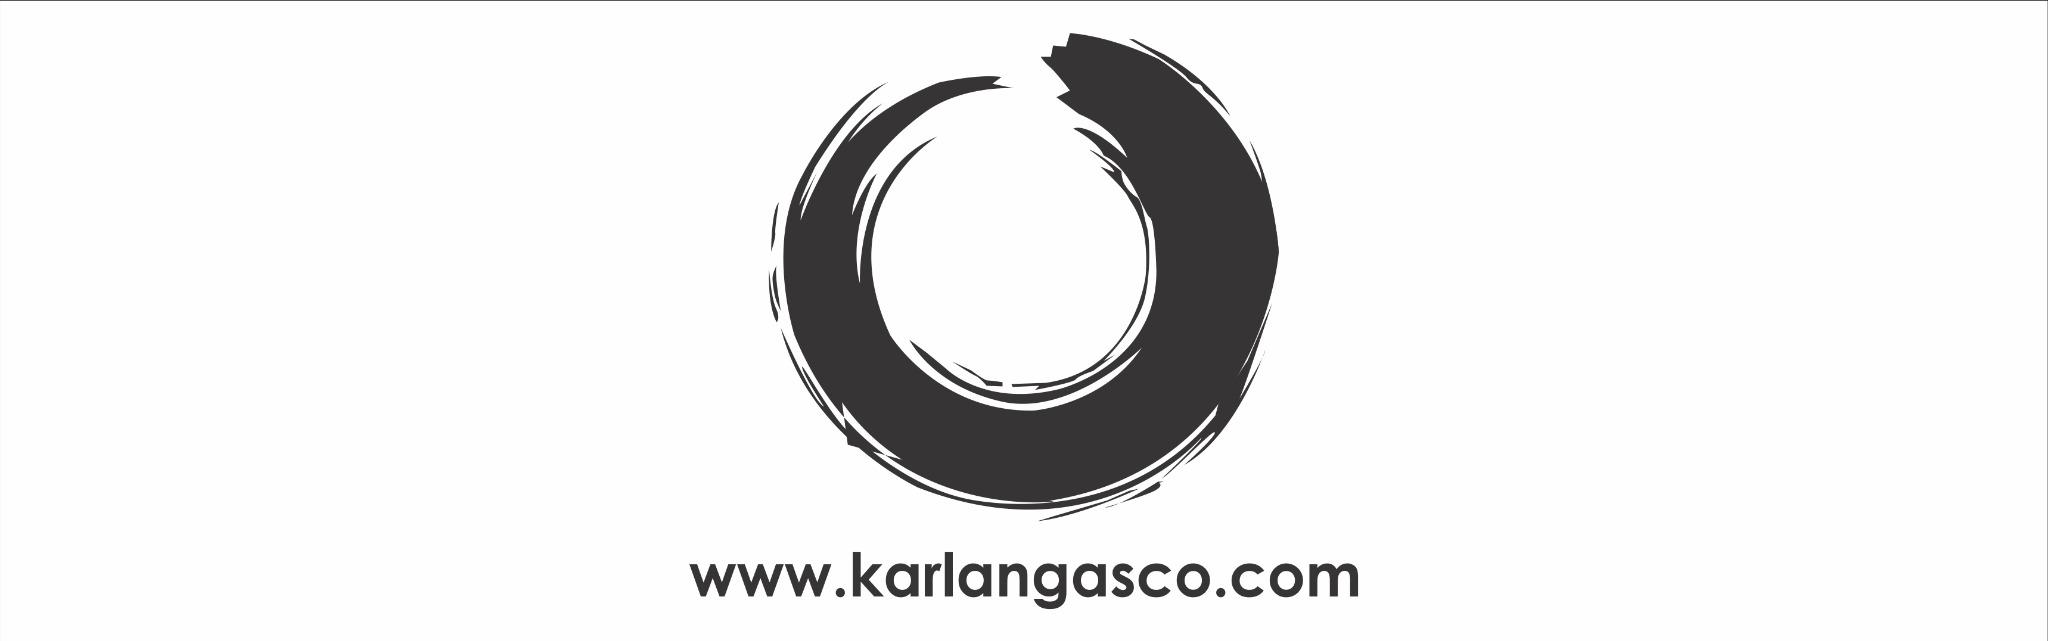 Karlangasco - Magazine cover